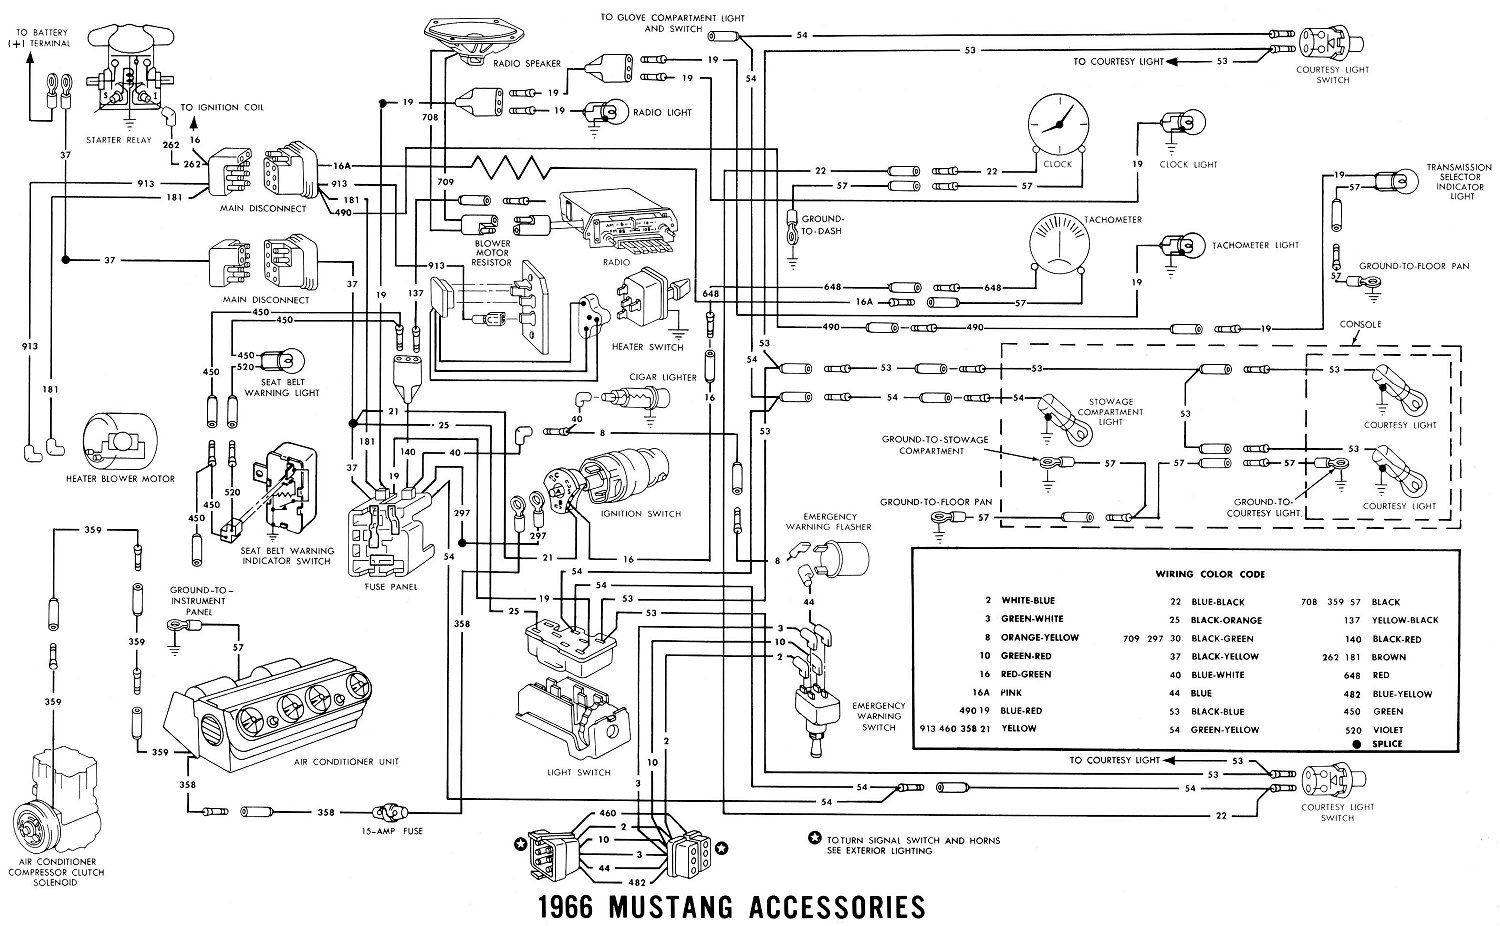 Mustang Wiring Schematic Wiring Diagram Multimedia Multimedia Wallabyviaggi It